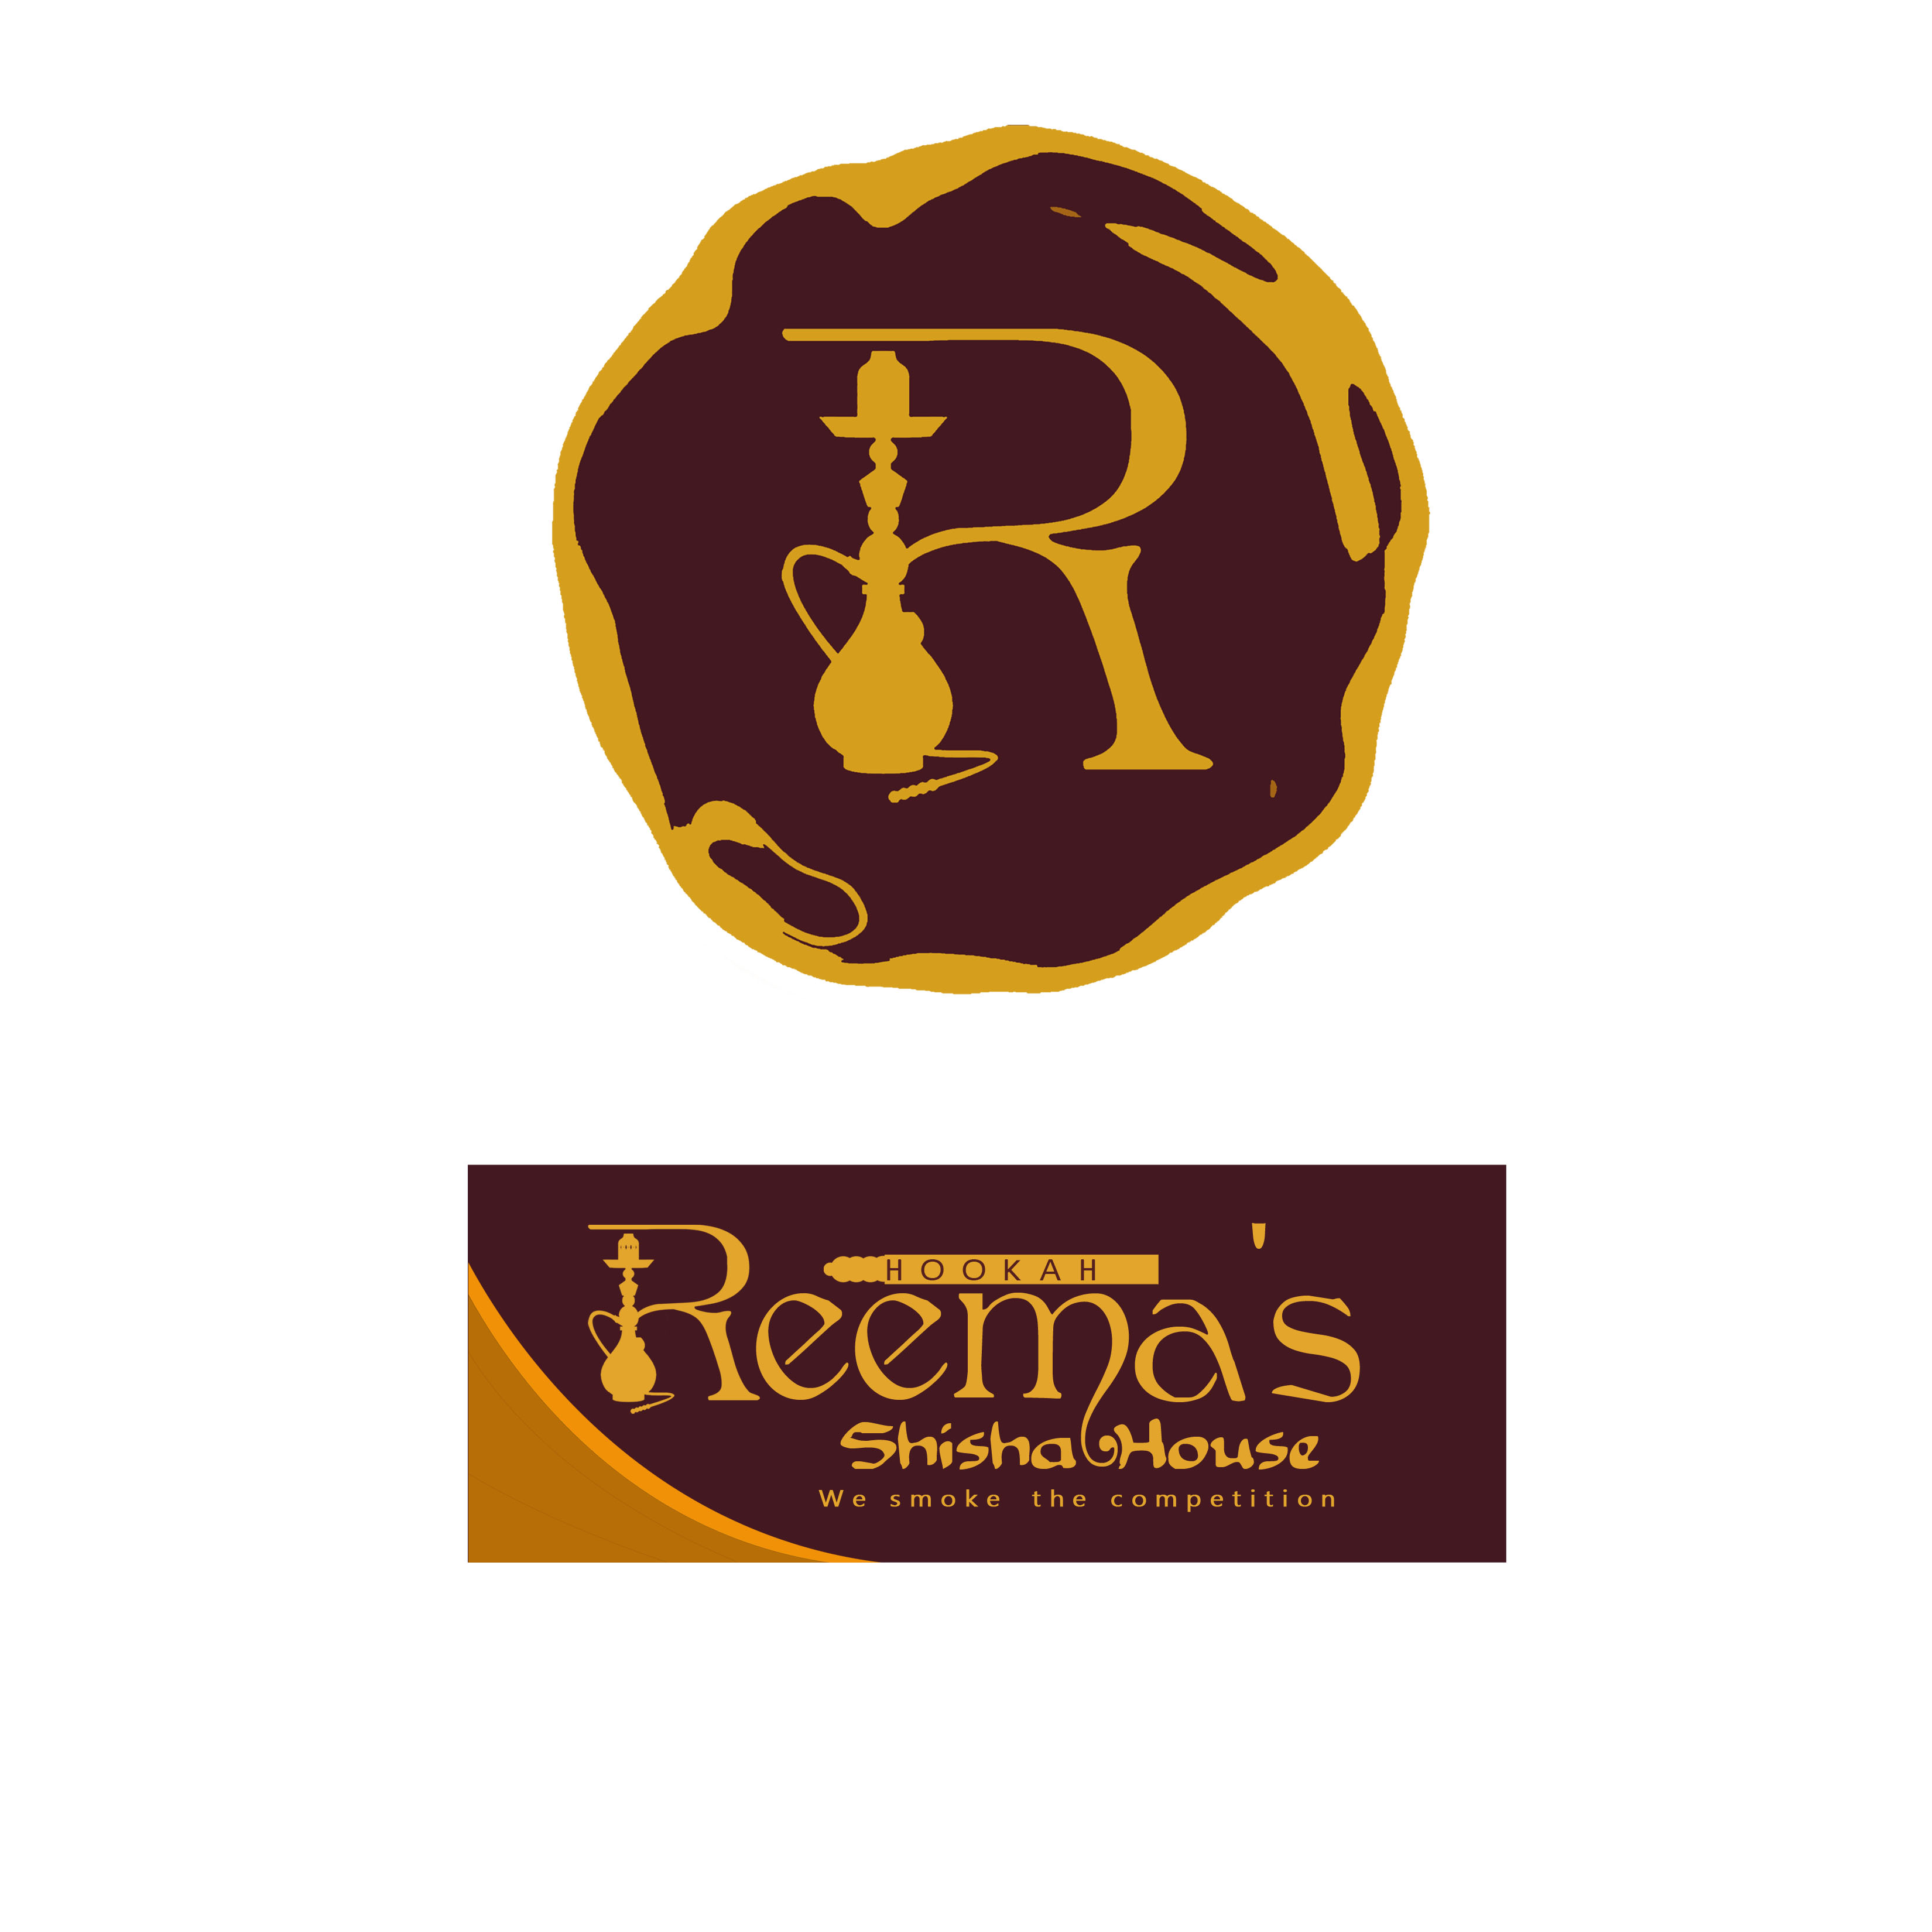 Logo Design by Allan Esclamado - Entry No. 63 in the Logo Design Contest Captivating Logo Design for Reema's Shisha House.